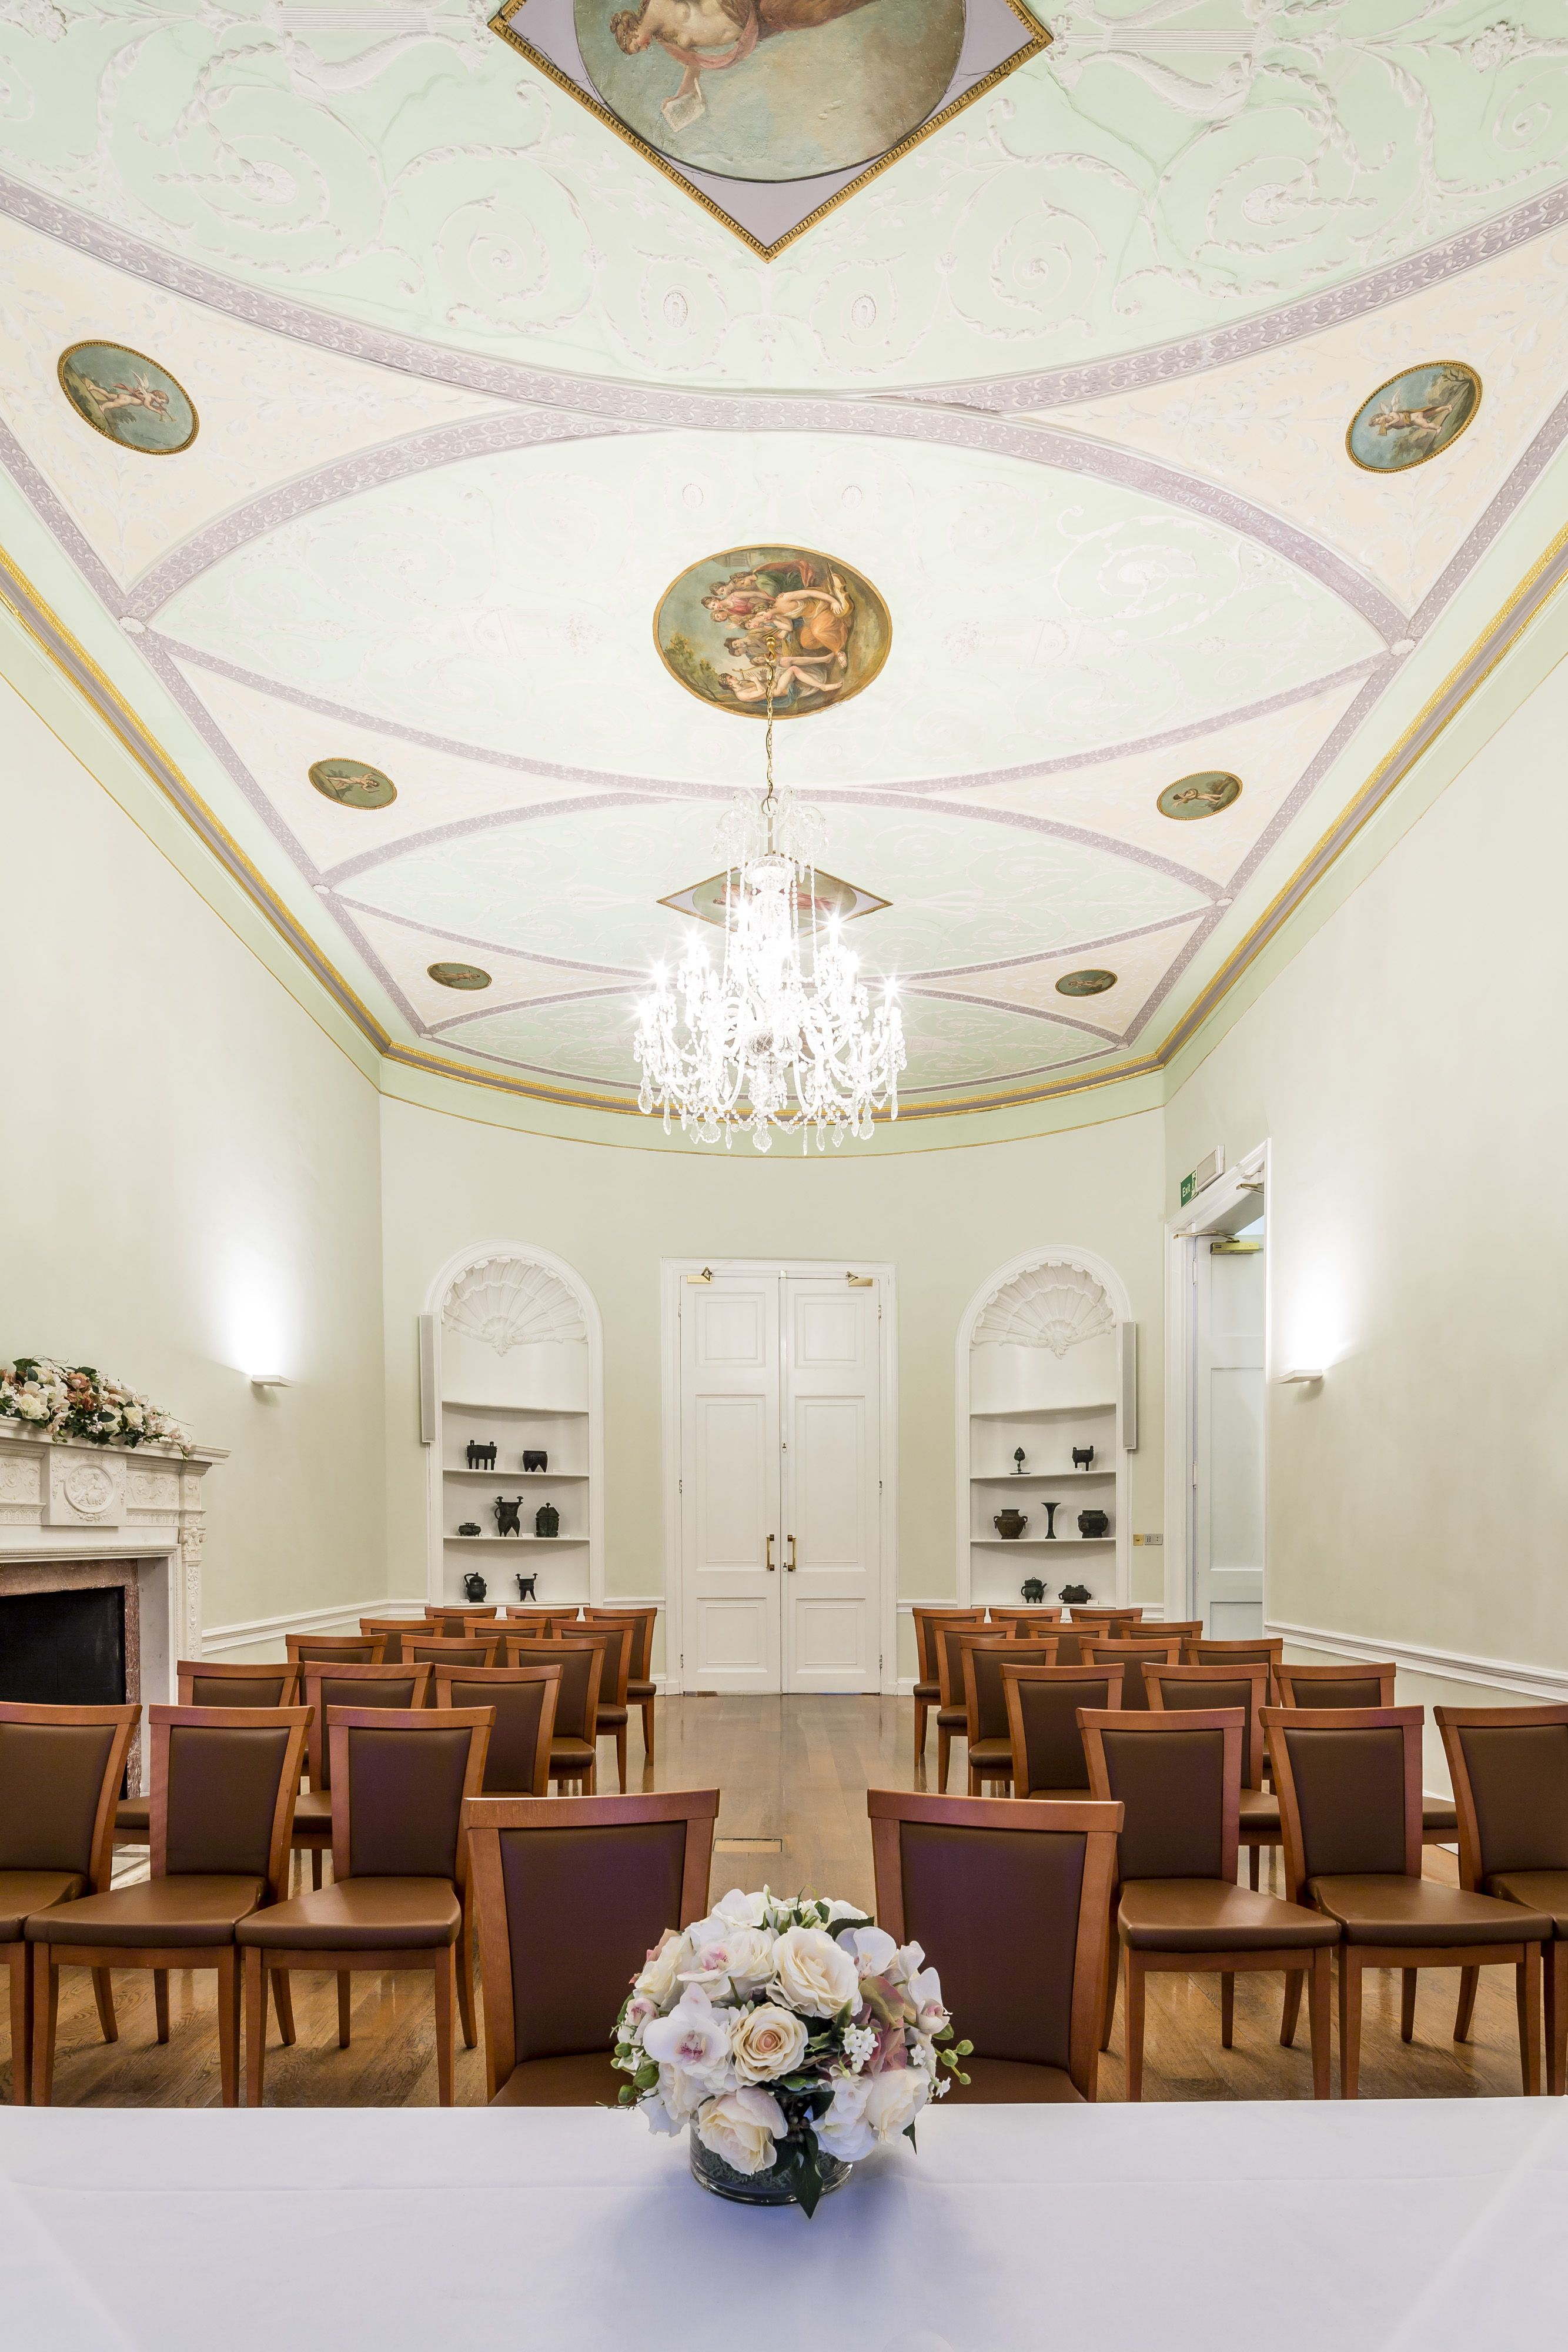 The Beautiful Fine Room At Asia House Our Newest Wedding Venue In Heart Of Marylebone Ceremonies From